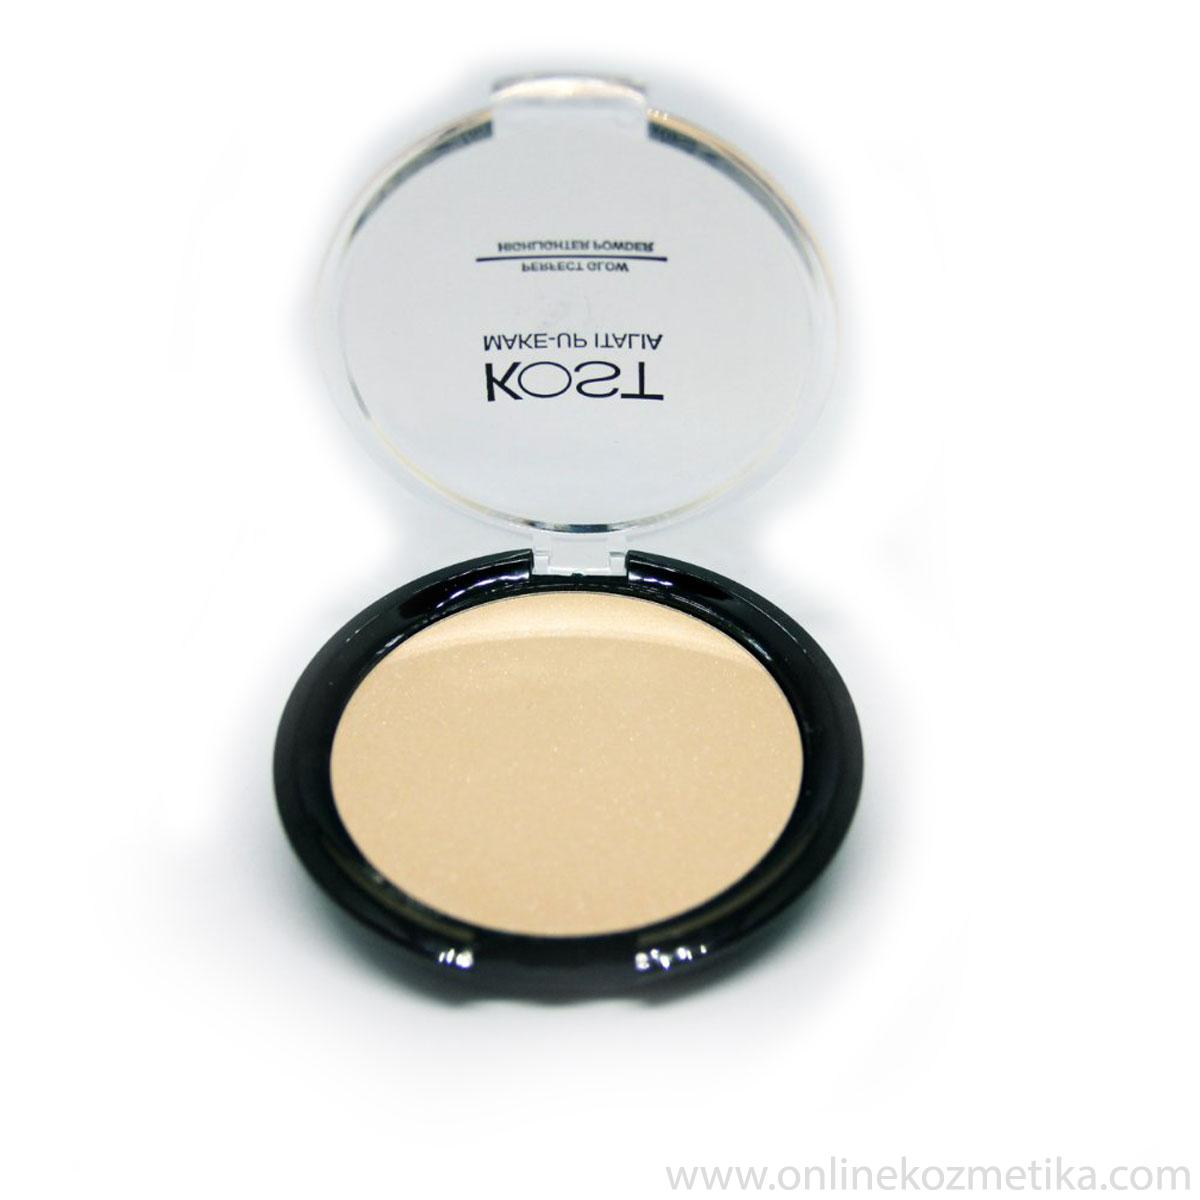 KOST PERFECT GLOW HIGHLIGHTER 01